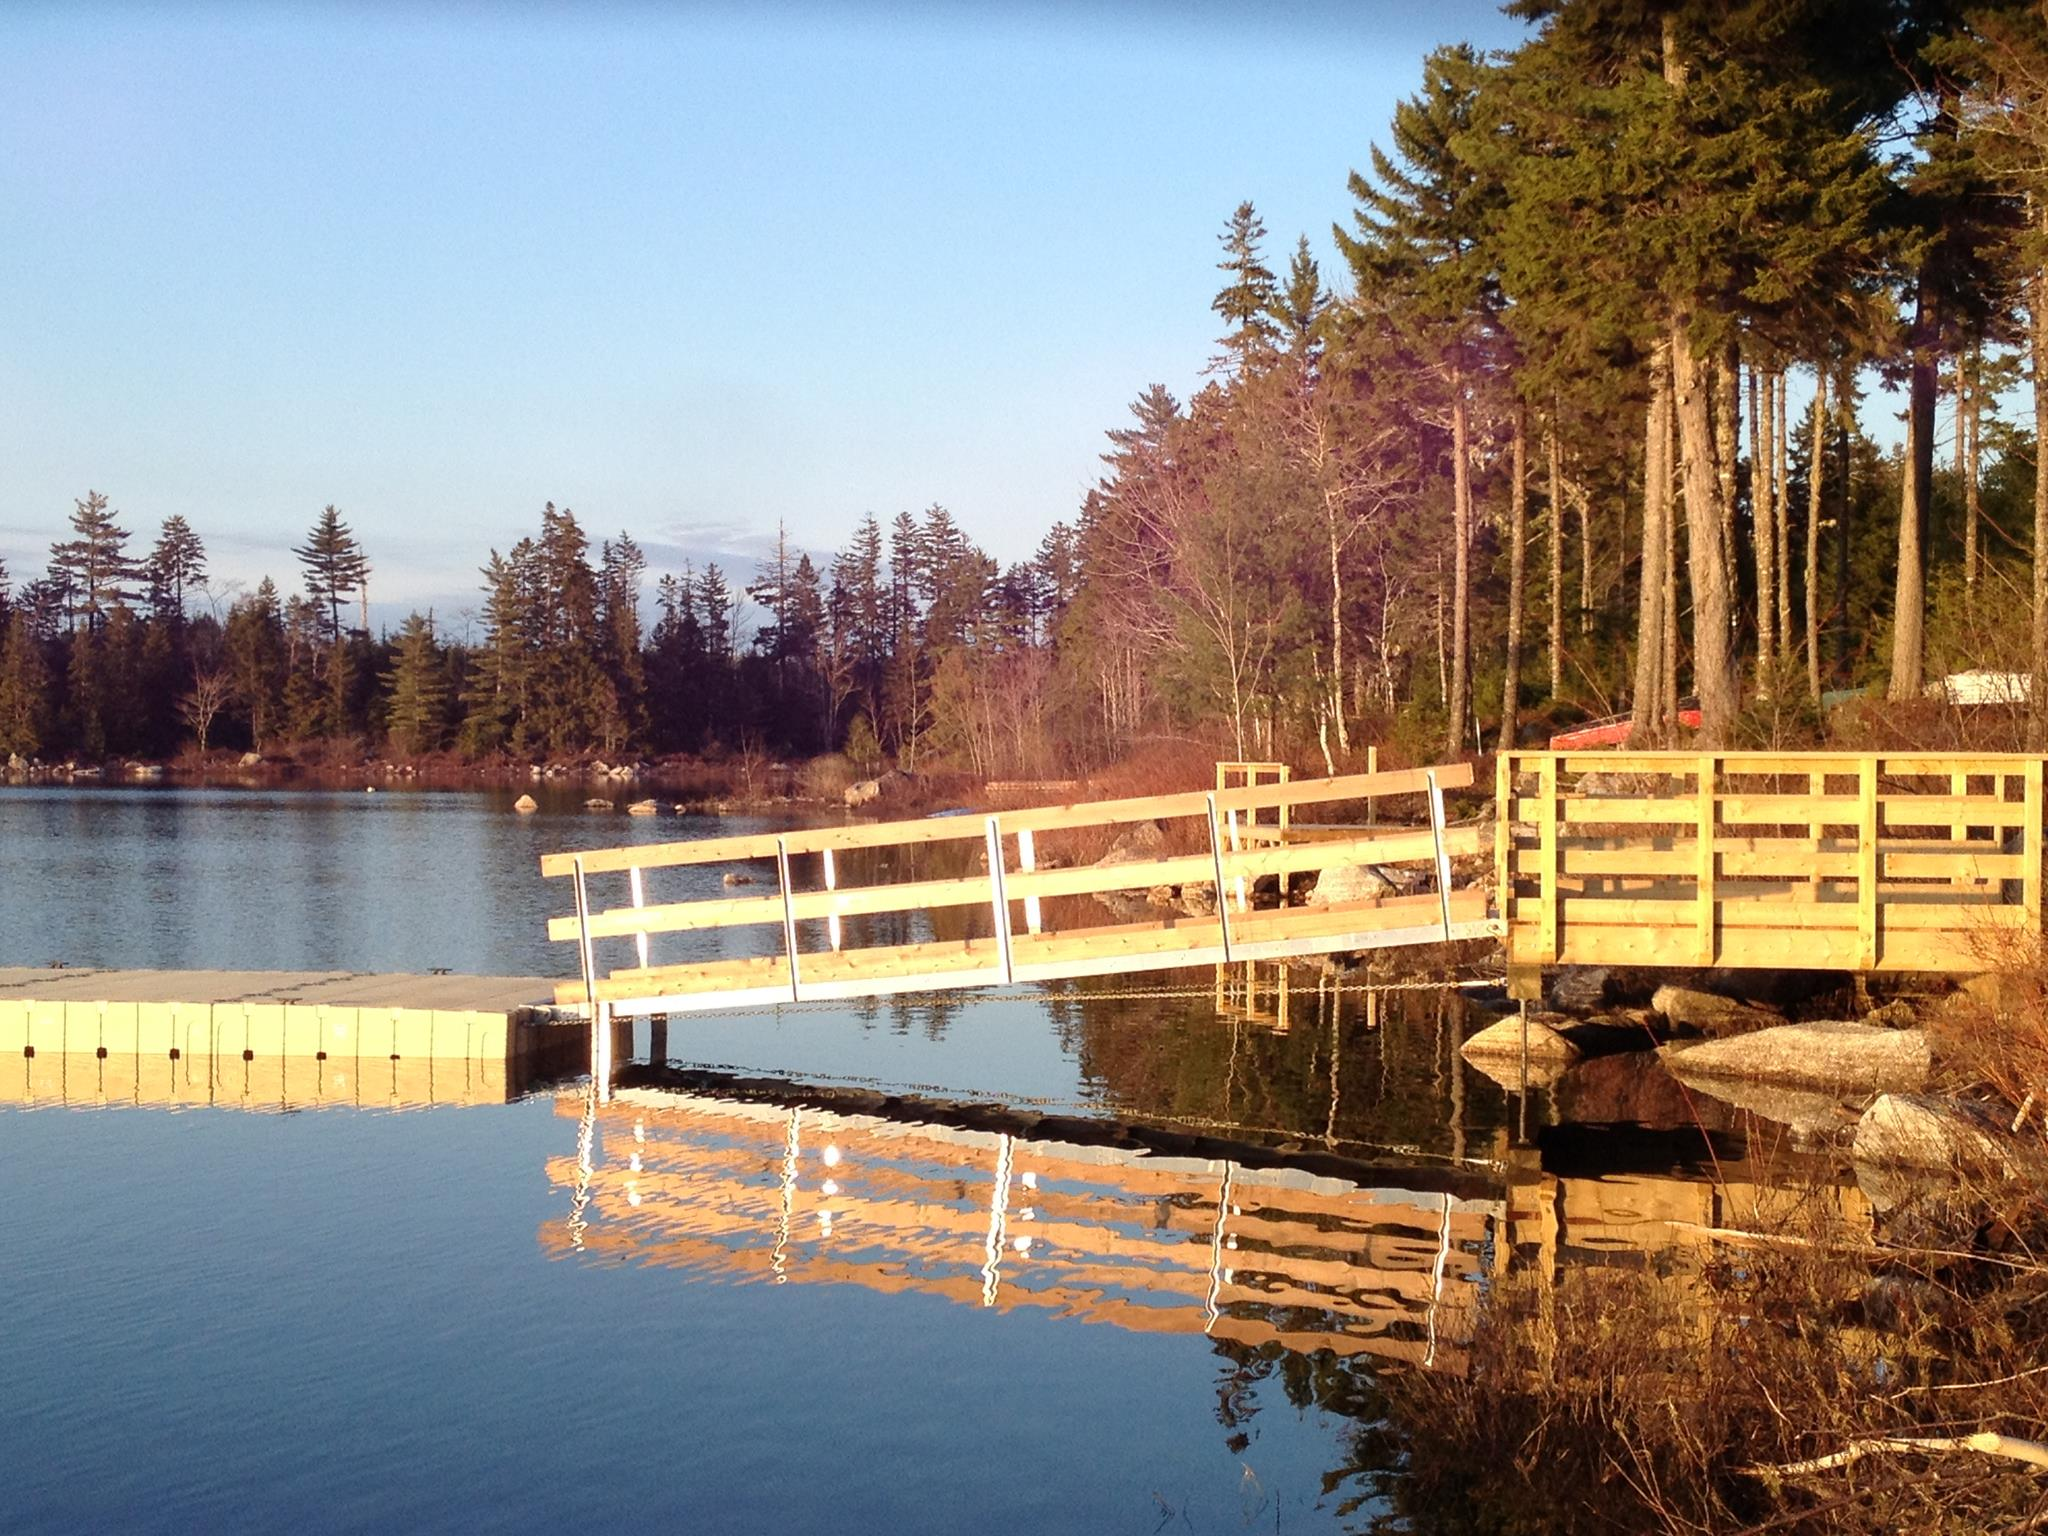 Wrights Lake Dock 2